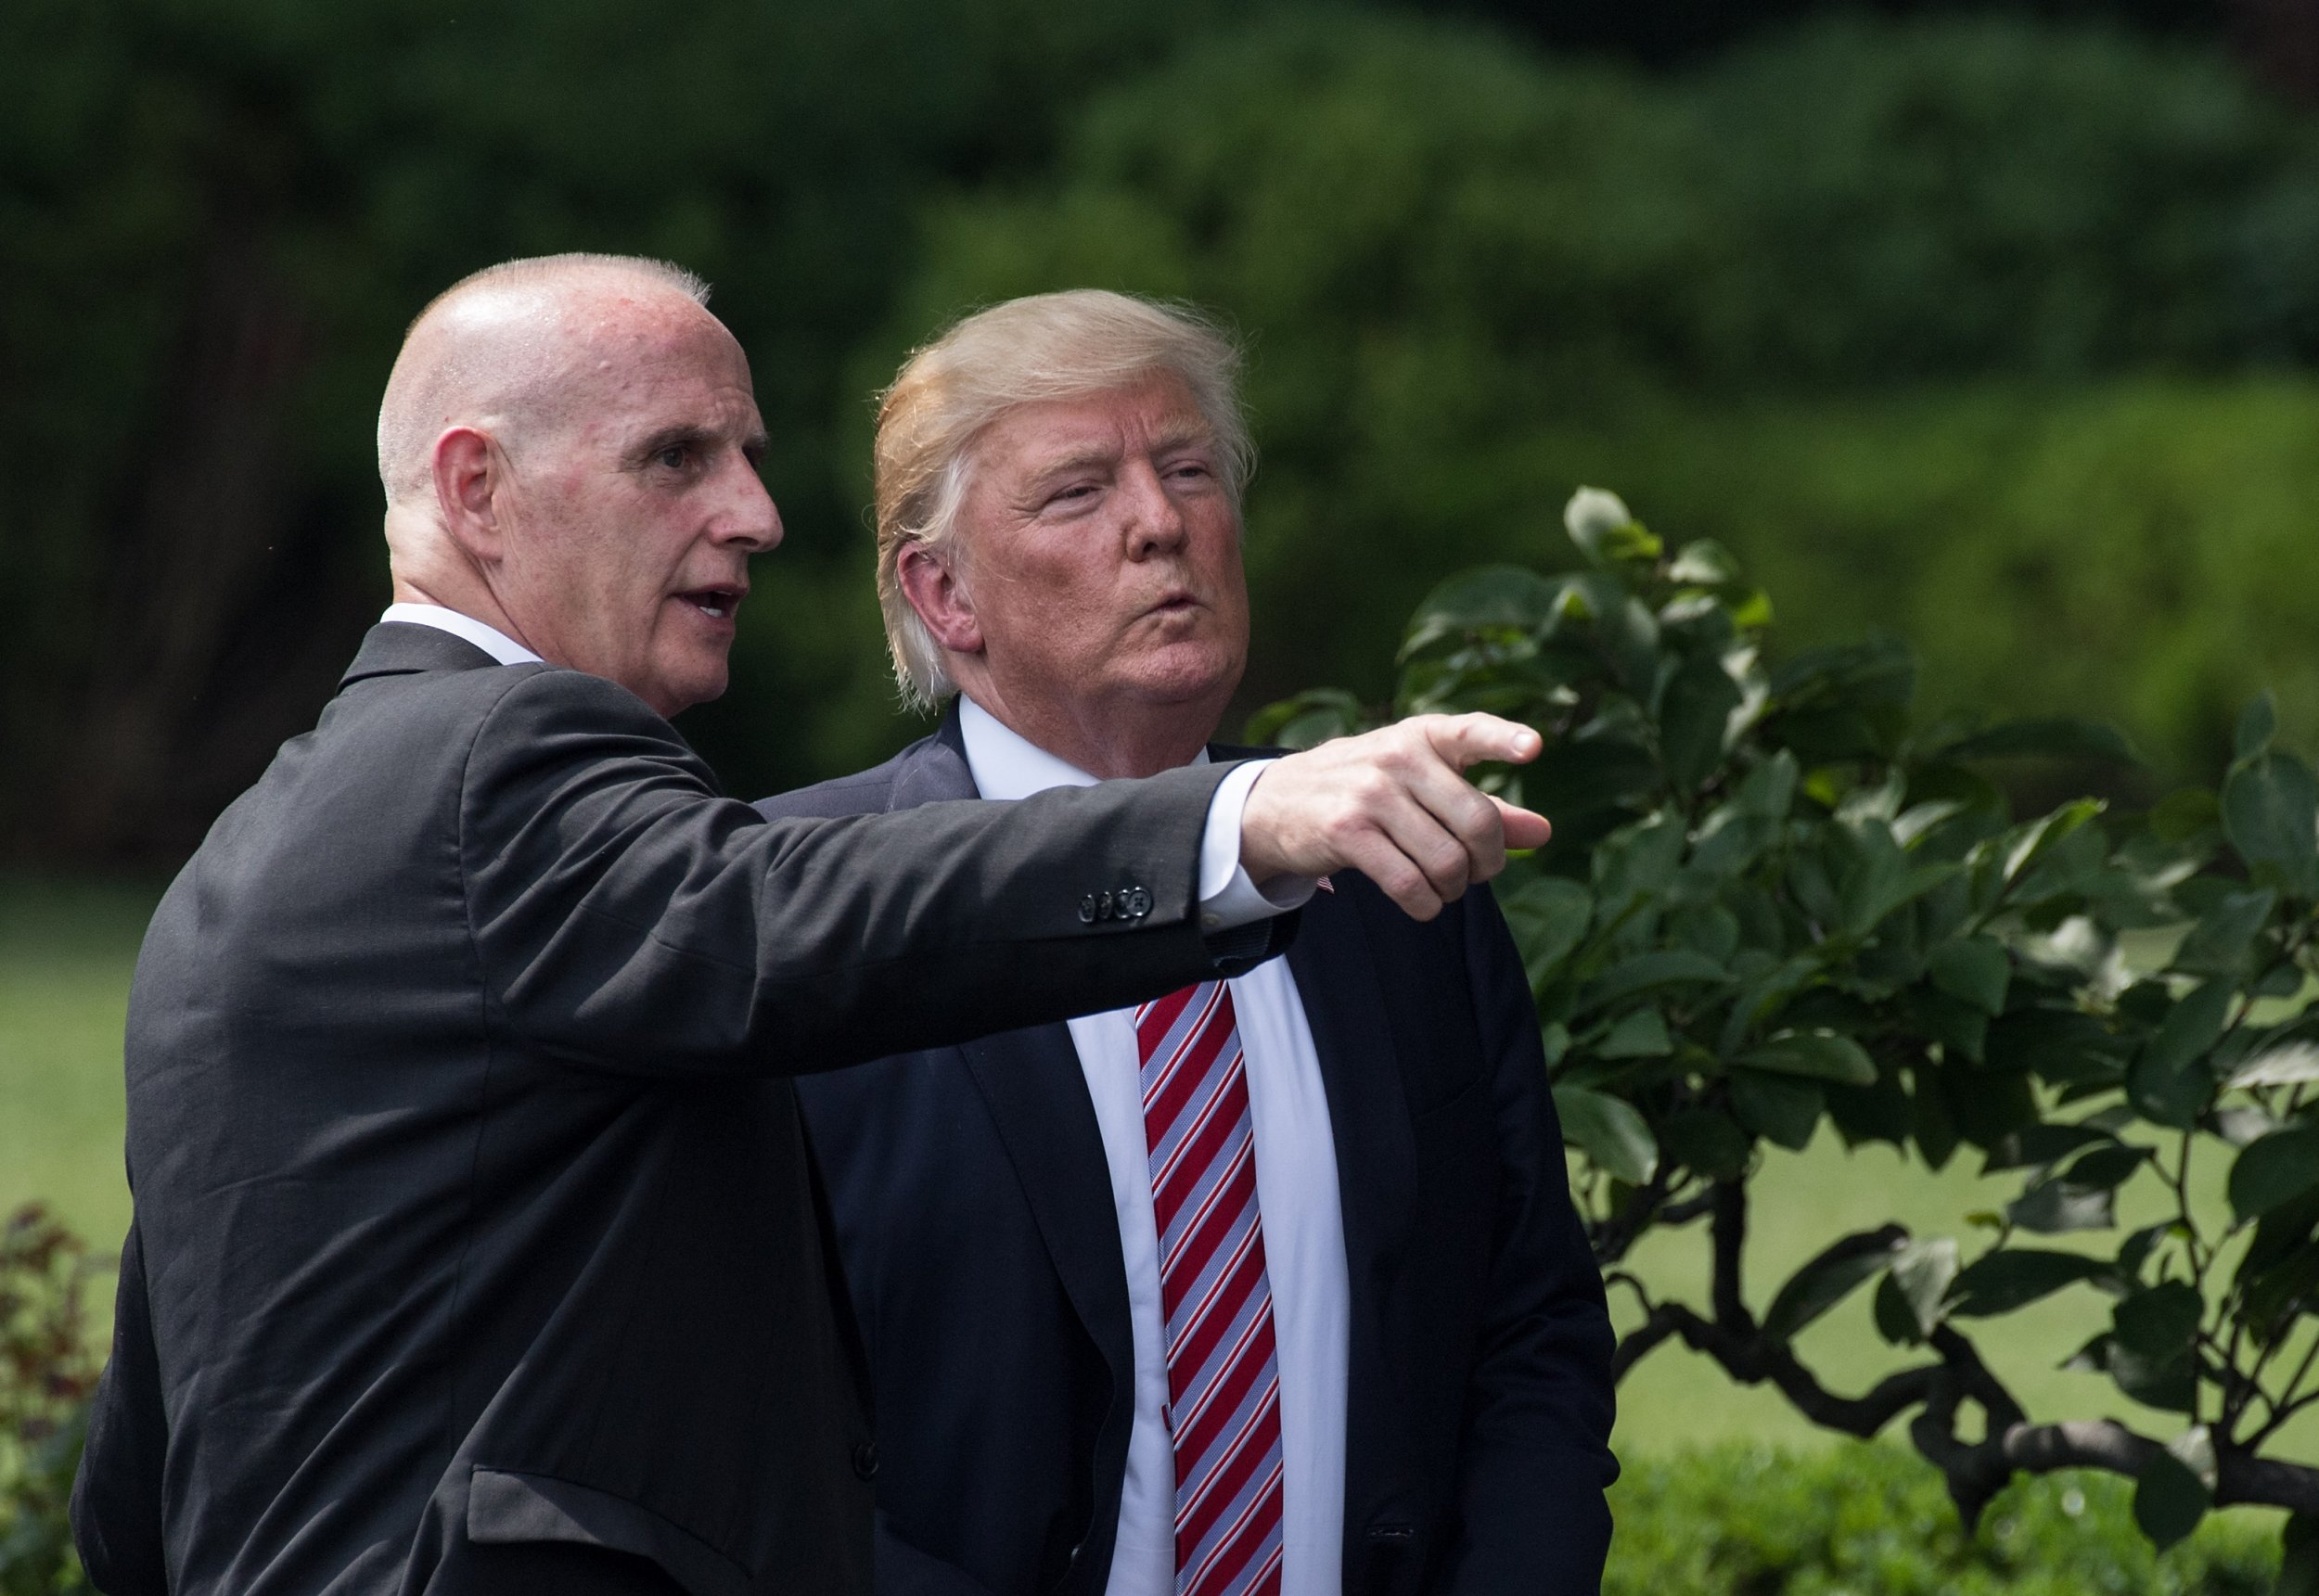 Keith Schiller, Donald Trump